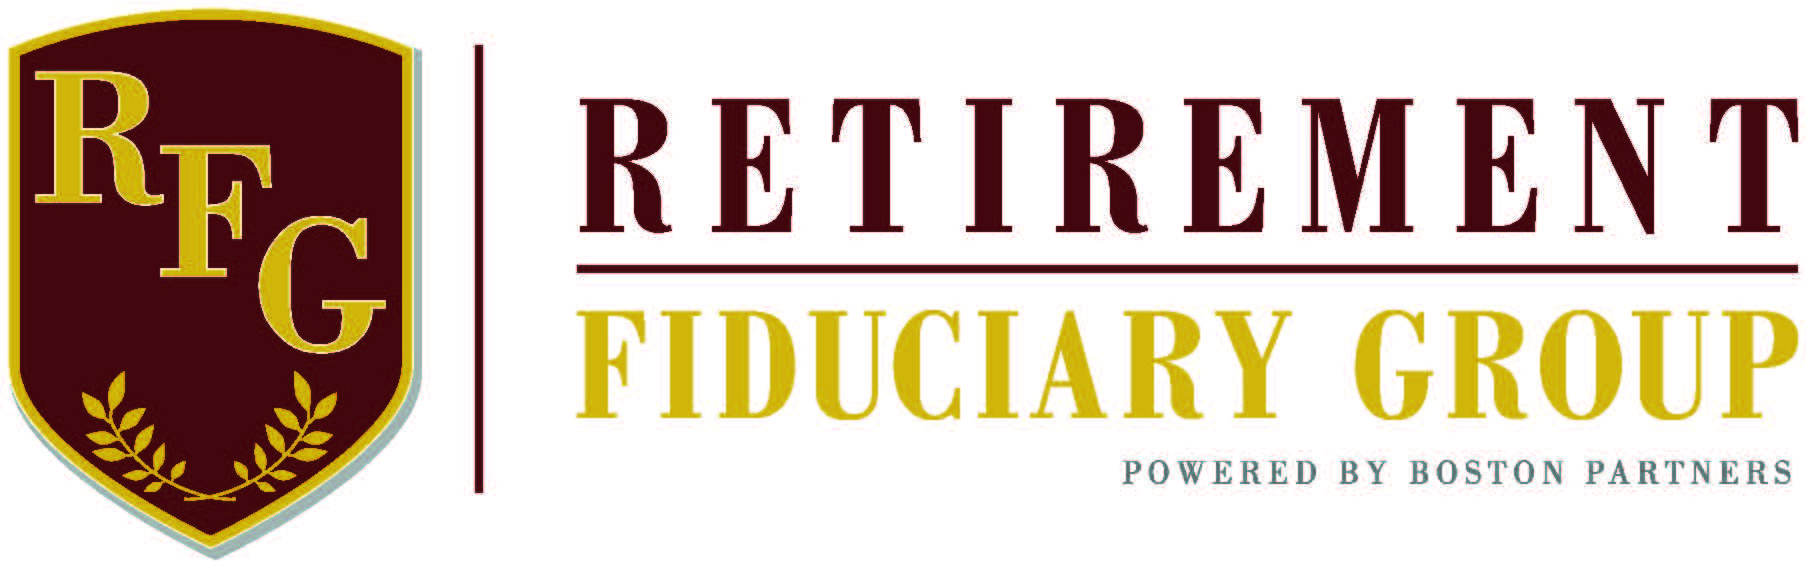 Retirement Fiduciary Group